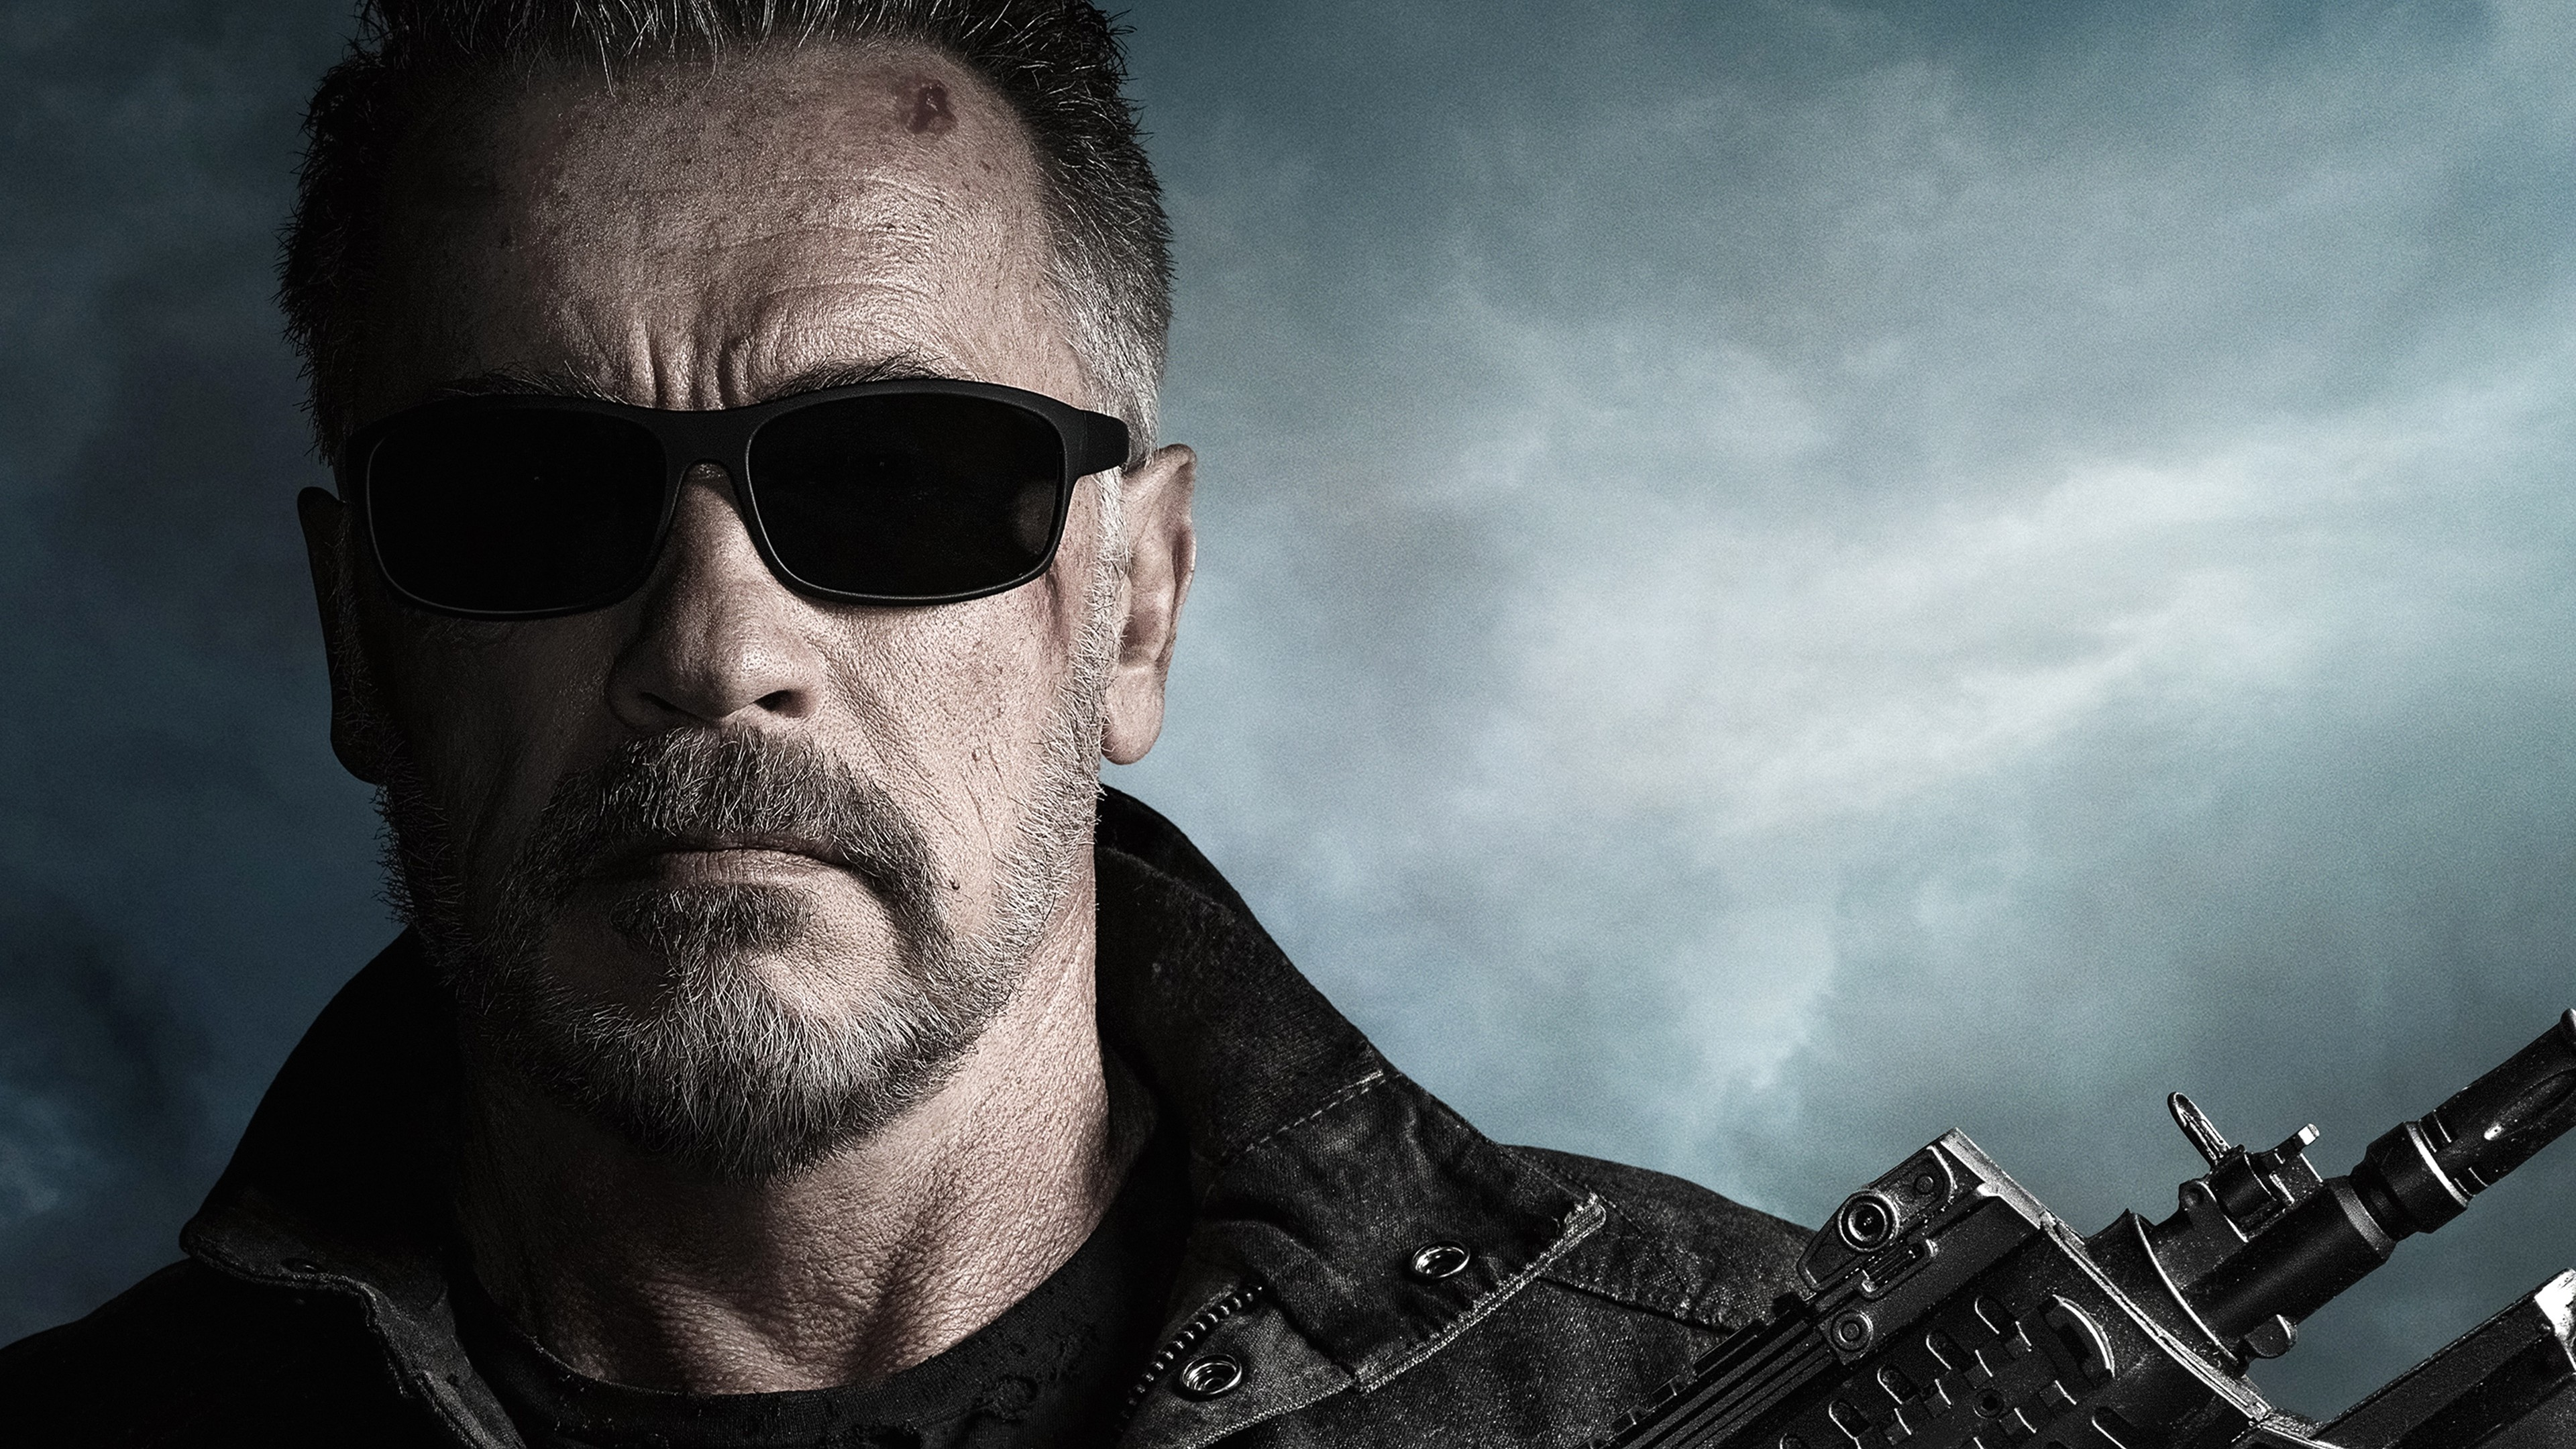 Terminator: Dark Fate Movie Photo Arnold Schwarzenegger Wallpaper 4K